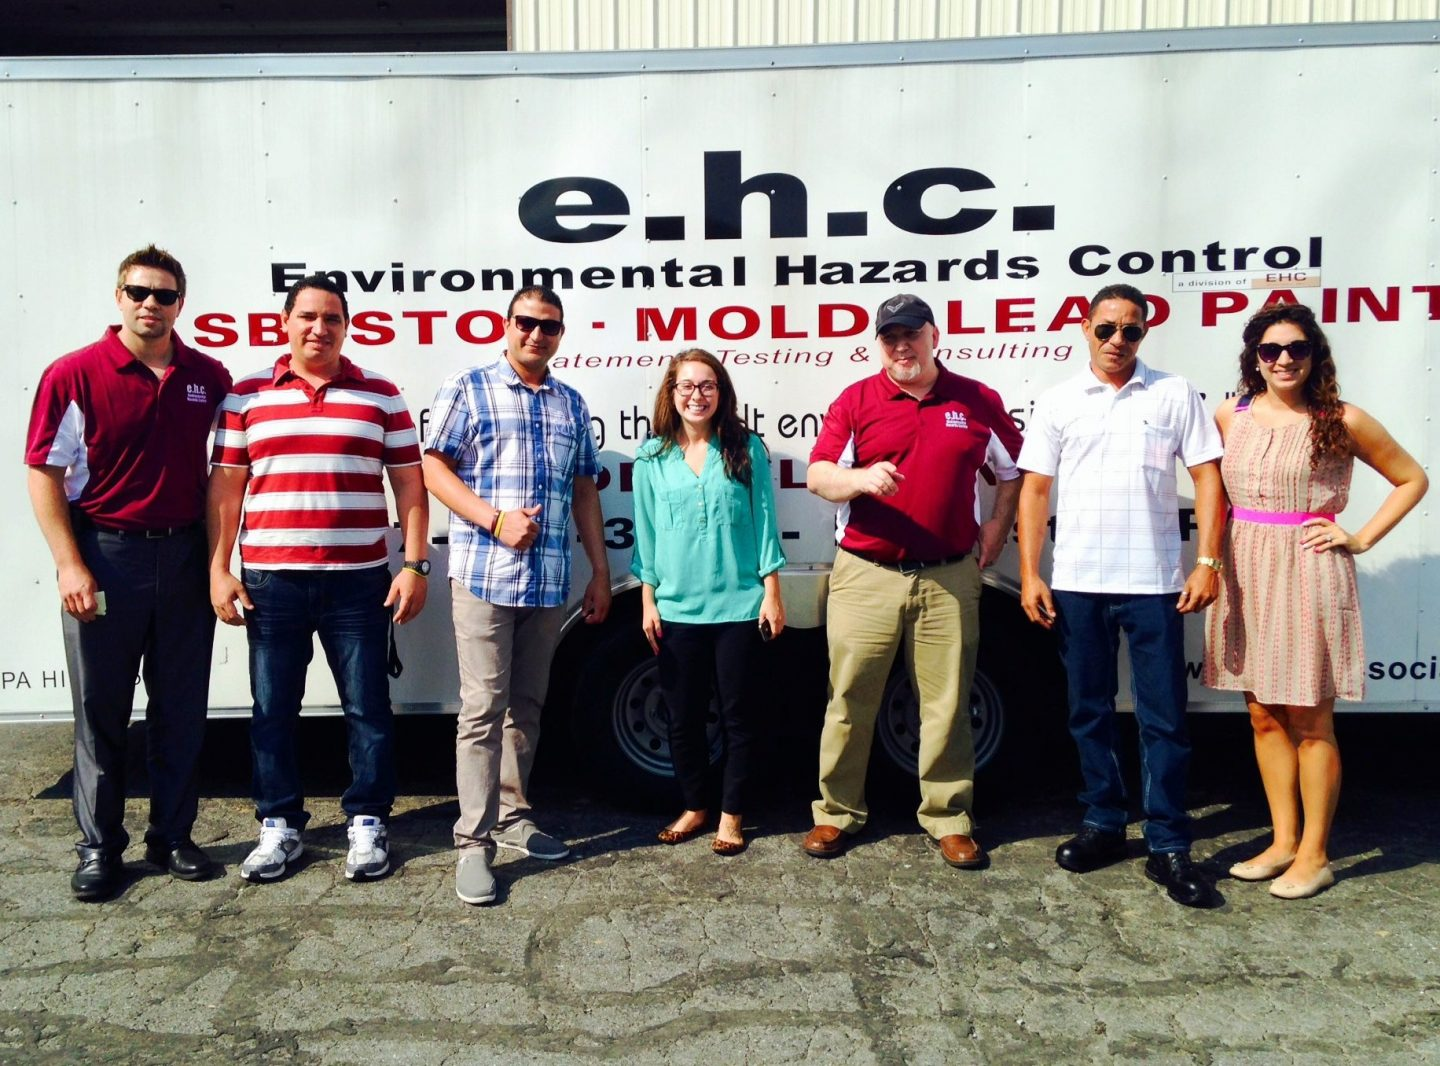 the e.h.c. team in lancaster pa